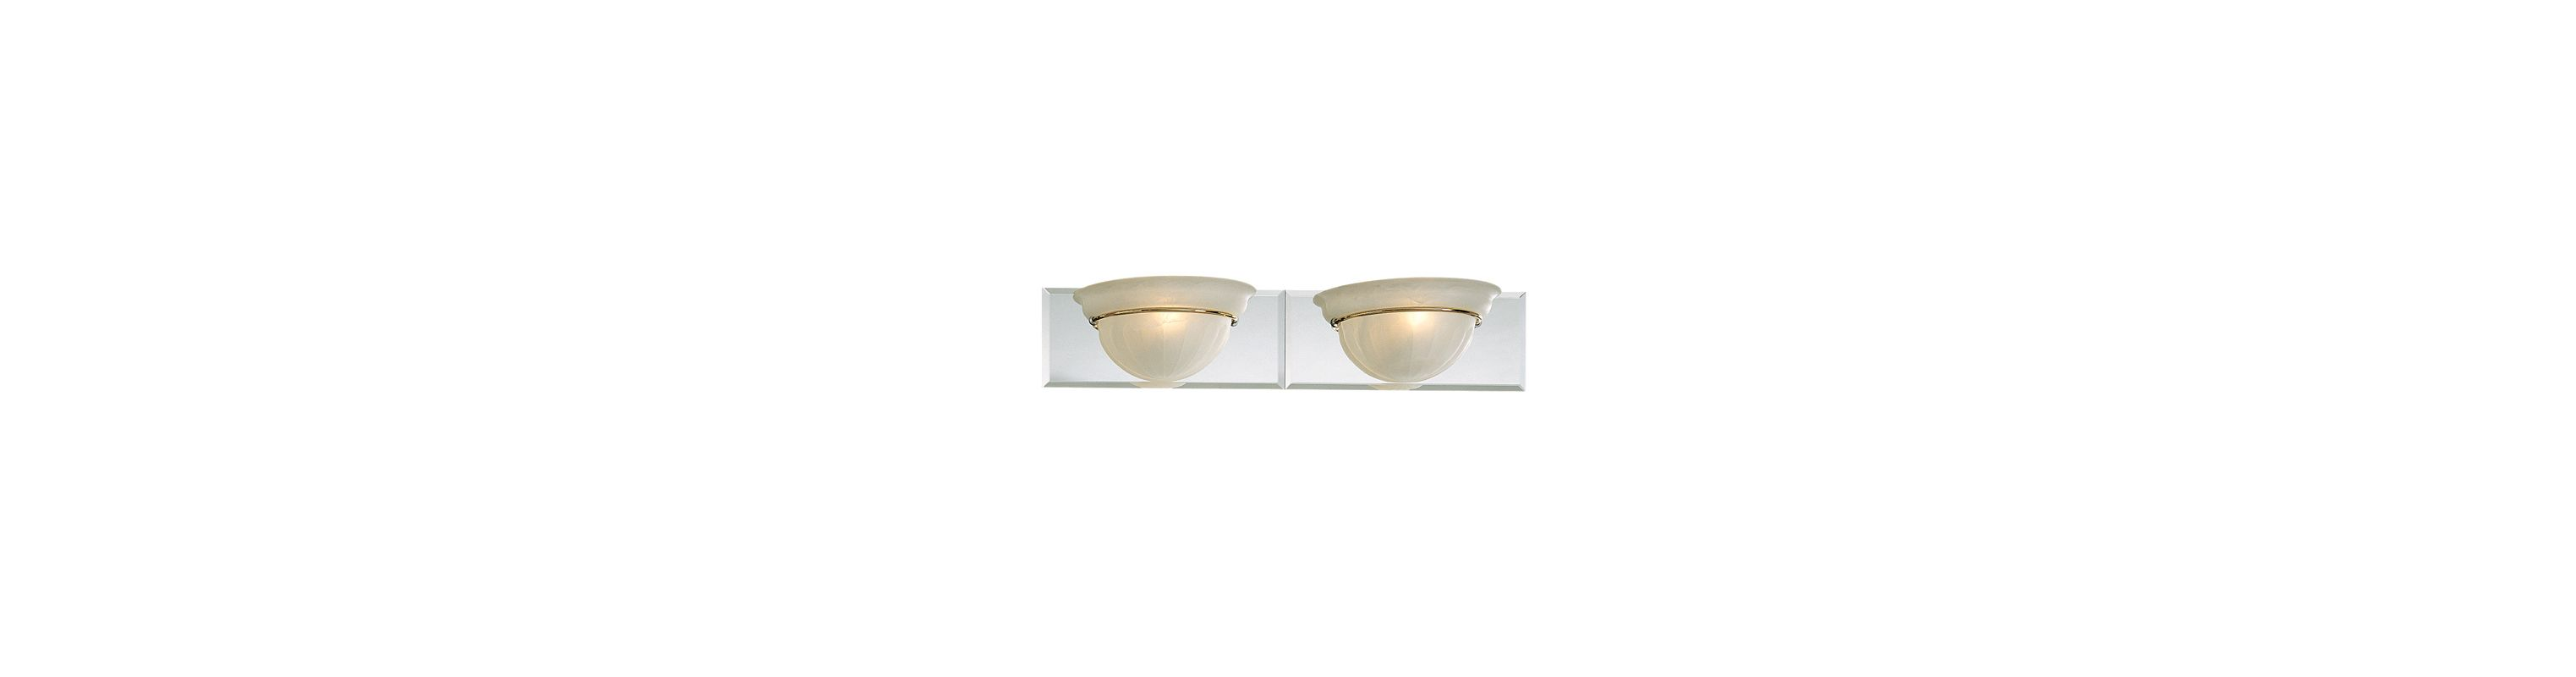 "Dolan Designs 442 24"" Wide Bathroom Fixture from the Rutland"